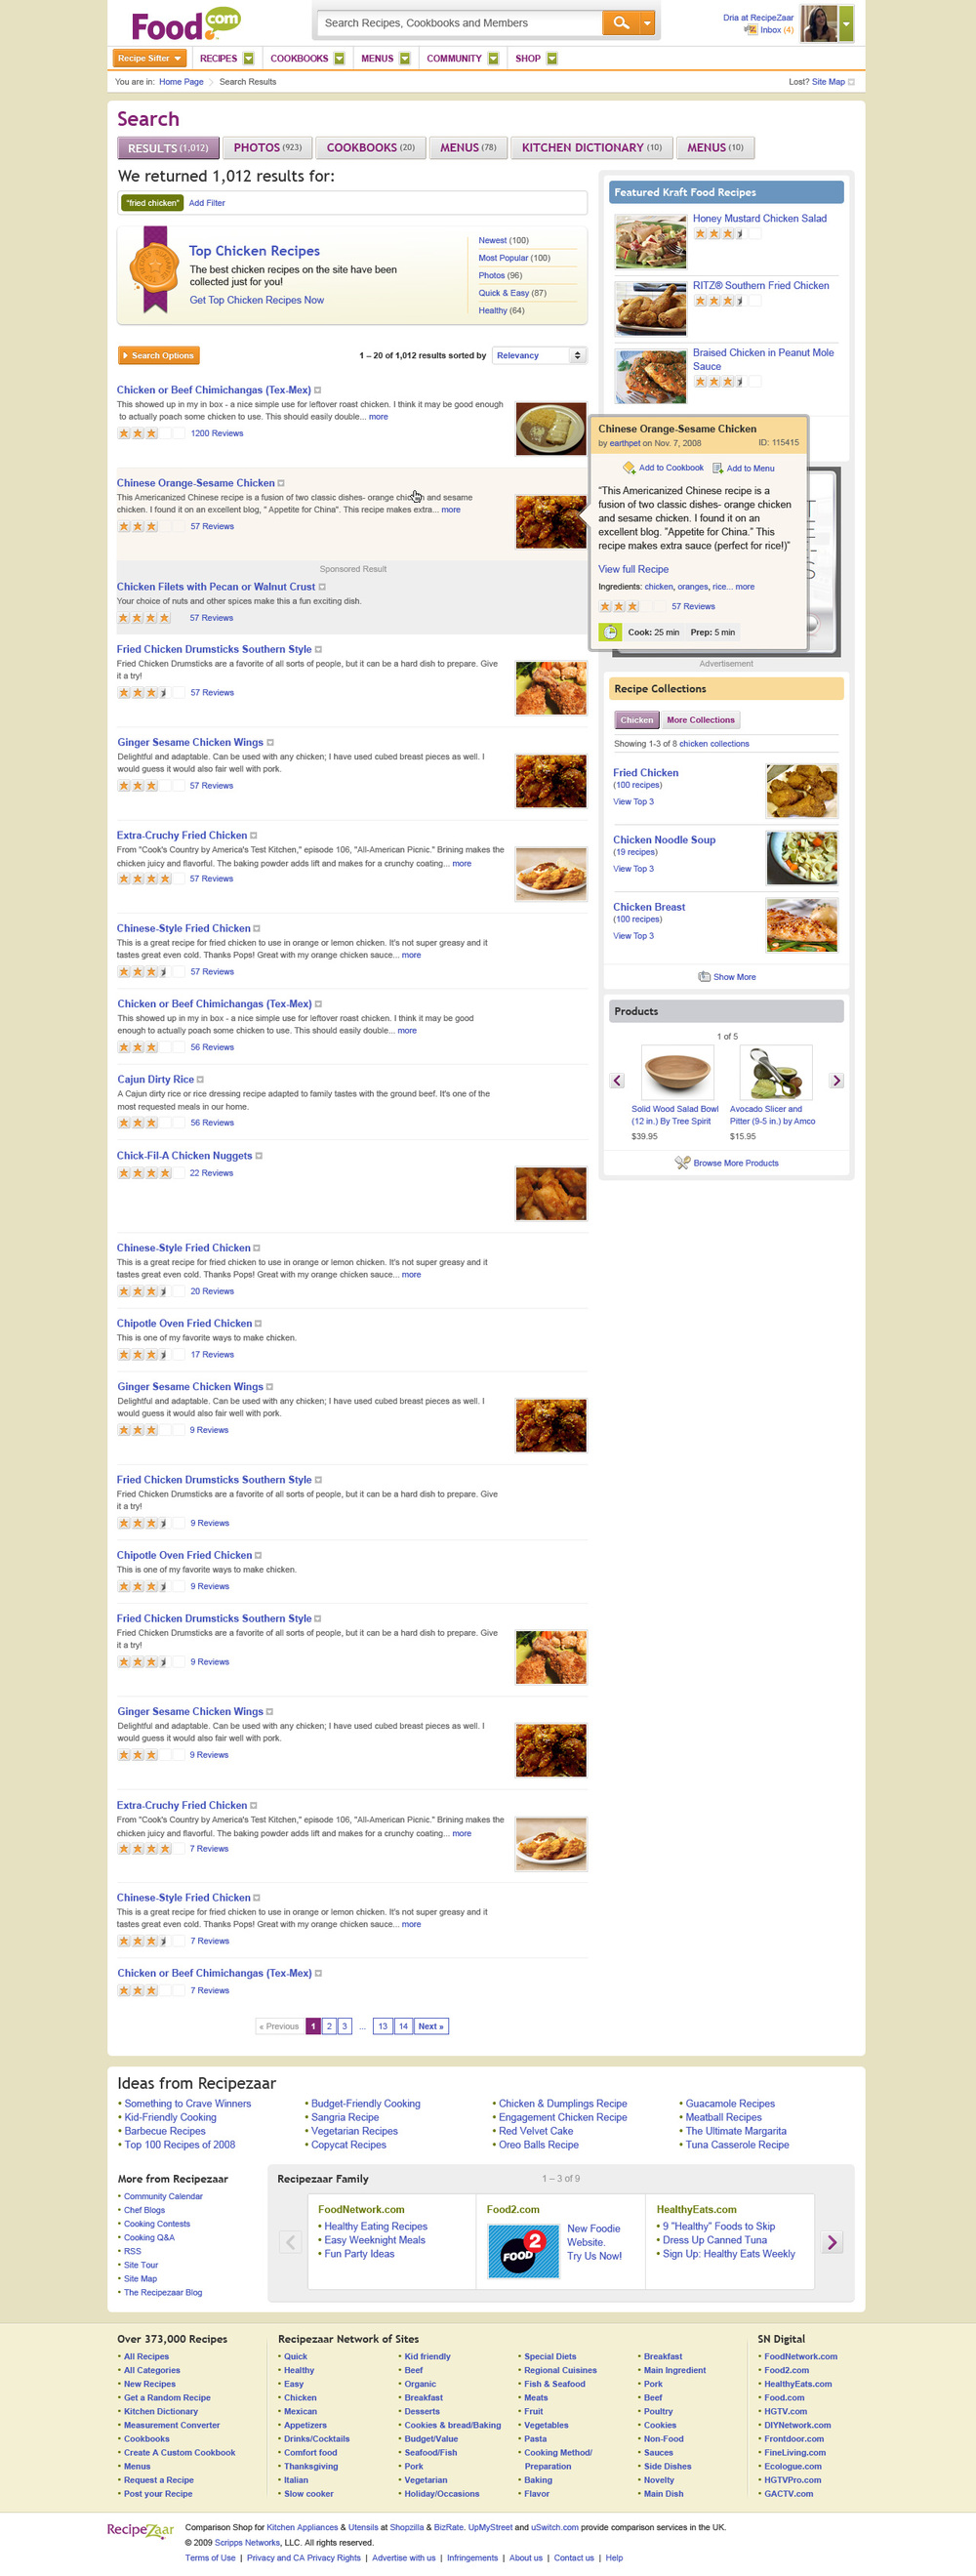 A tough decision to make regarding search results is which information to highlight. For Food.com, we chose to show the recipe name, it's rating, and the description from the original poster. Since analytics showed that users rarely used additional filters, we chose to make the design cleaner and give users the options to show them when needed. This decision did not affect the amount of usage of the filters.